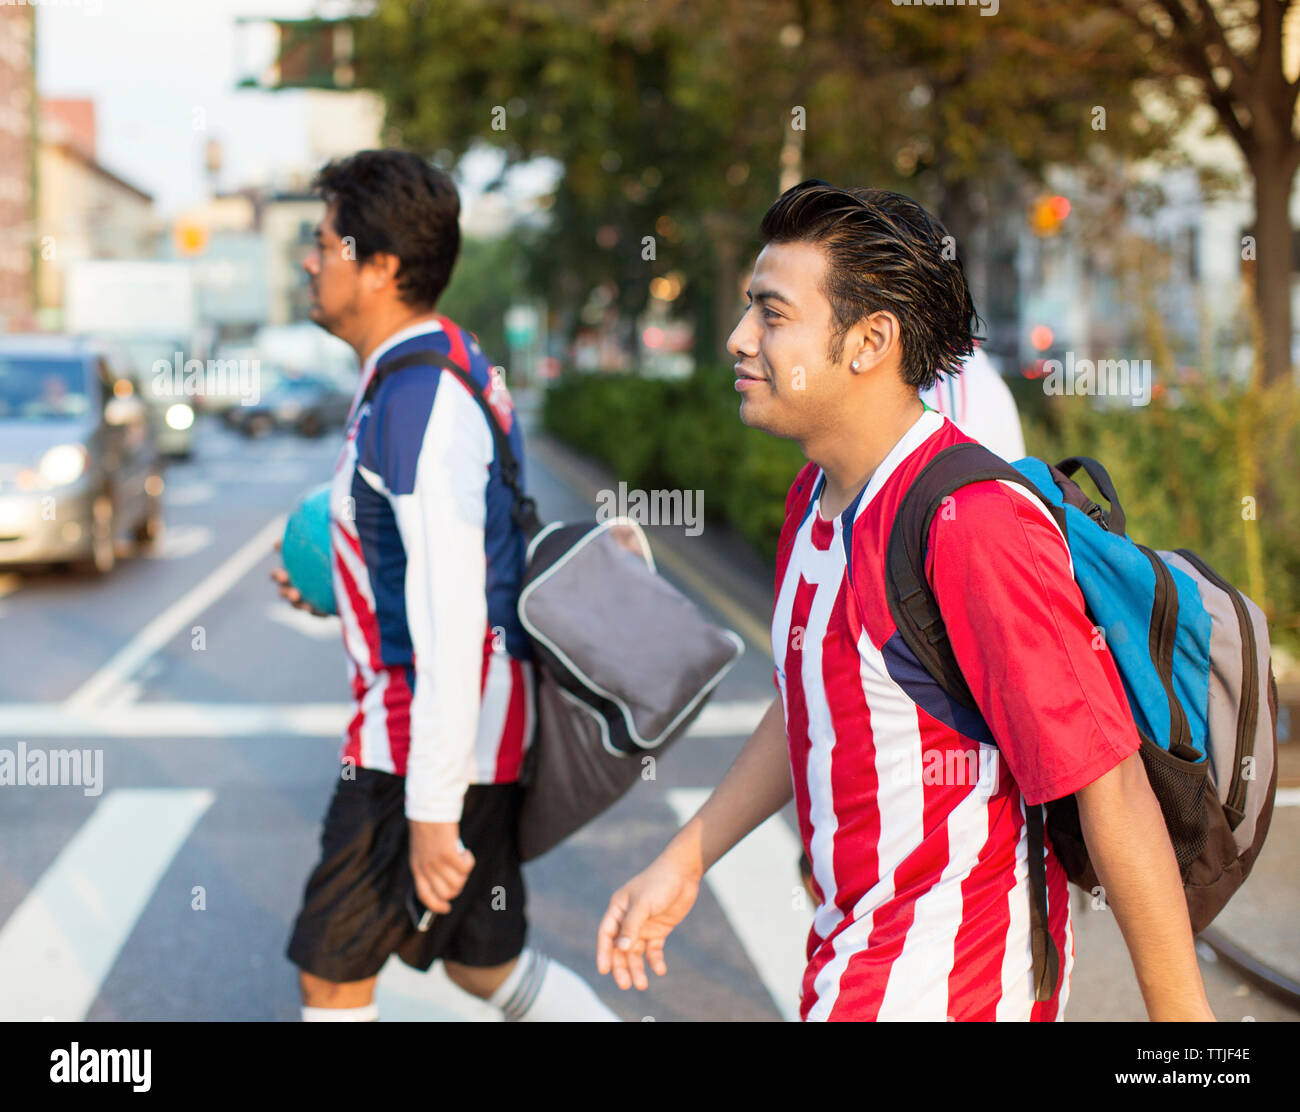 Soccer players crossing road at city street - Stock Image